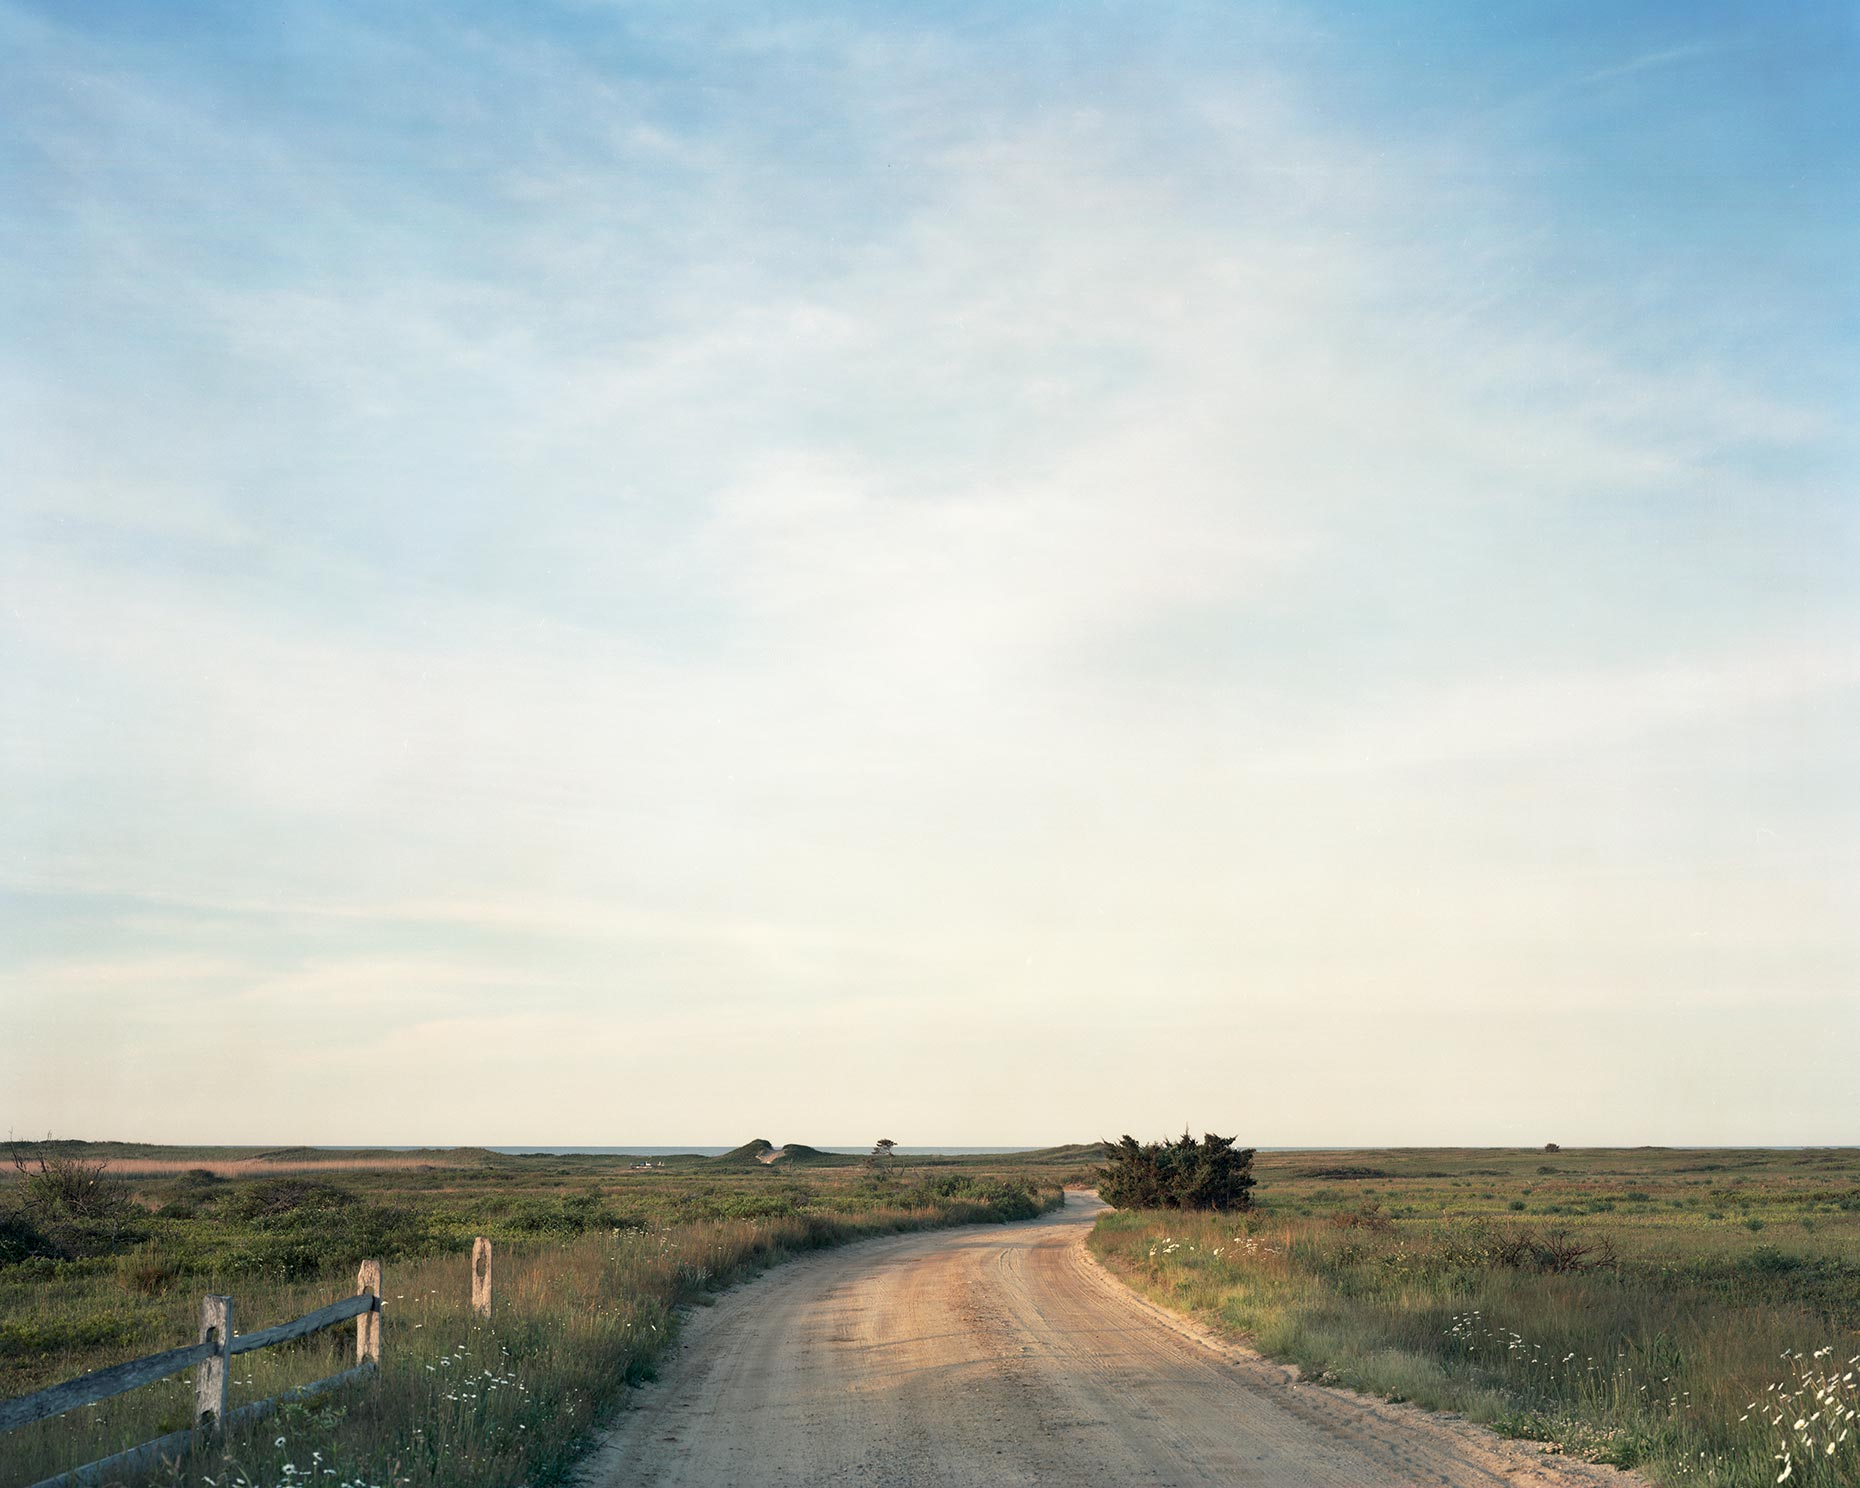 The Road South  |  Nantucket  |  Michael Gaillard